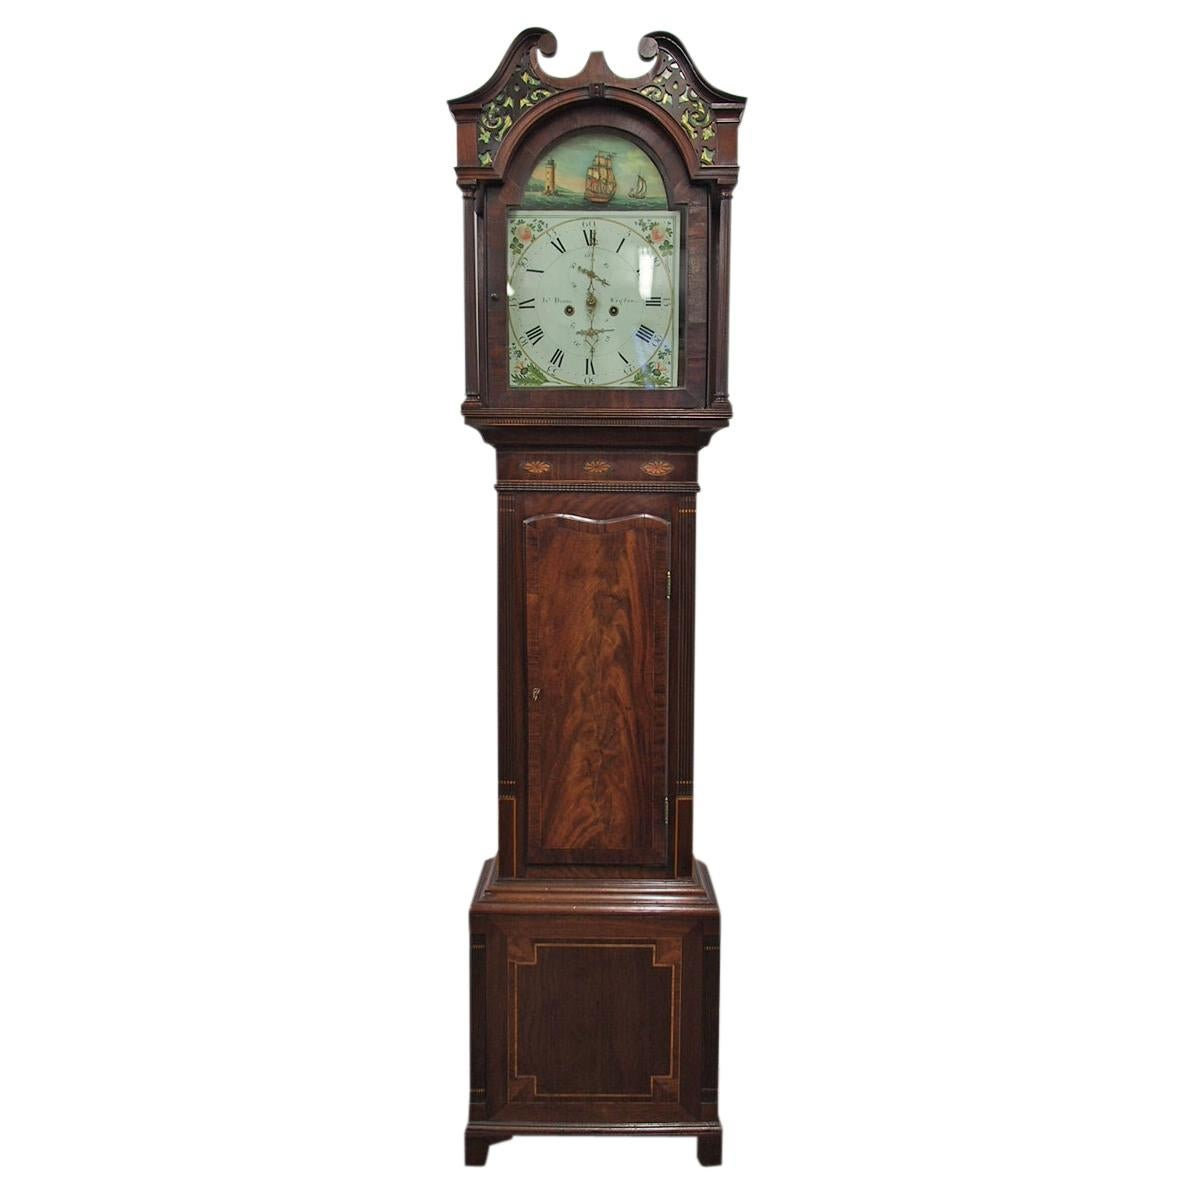 George Iii Chinoiserie Japanned Longcase Clock George Iv Mahogany Longcase Clock By J Dodds Of Wigton For